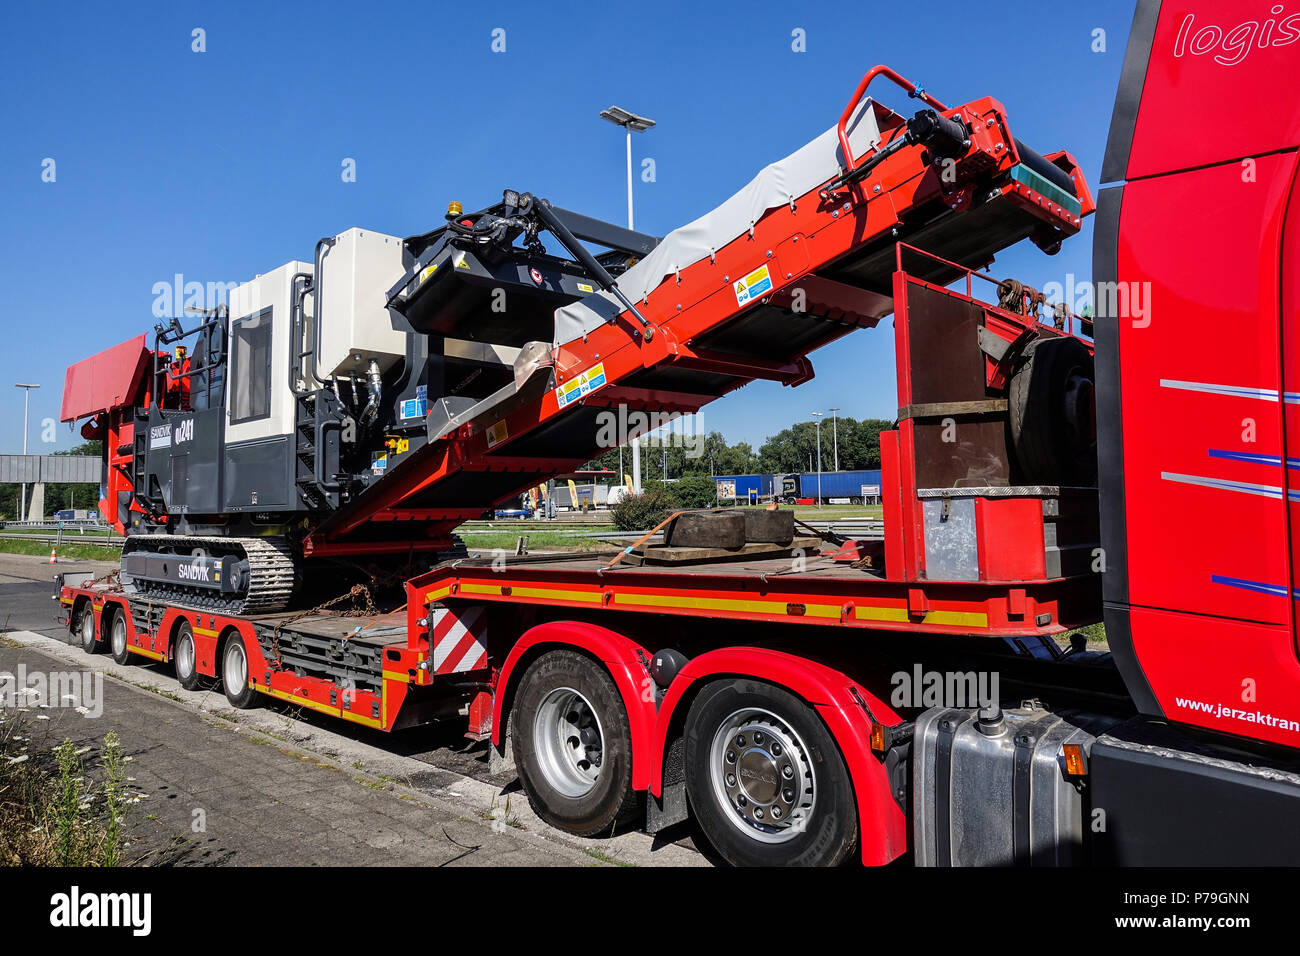 AACHEN, NRW, GERMANY - JUNE 30, 2018: Heavy hauling of a mobile jaw crusher, transported on a special low-loader trailer truck. - Stock Image